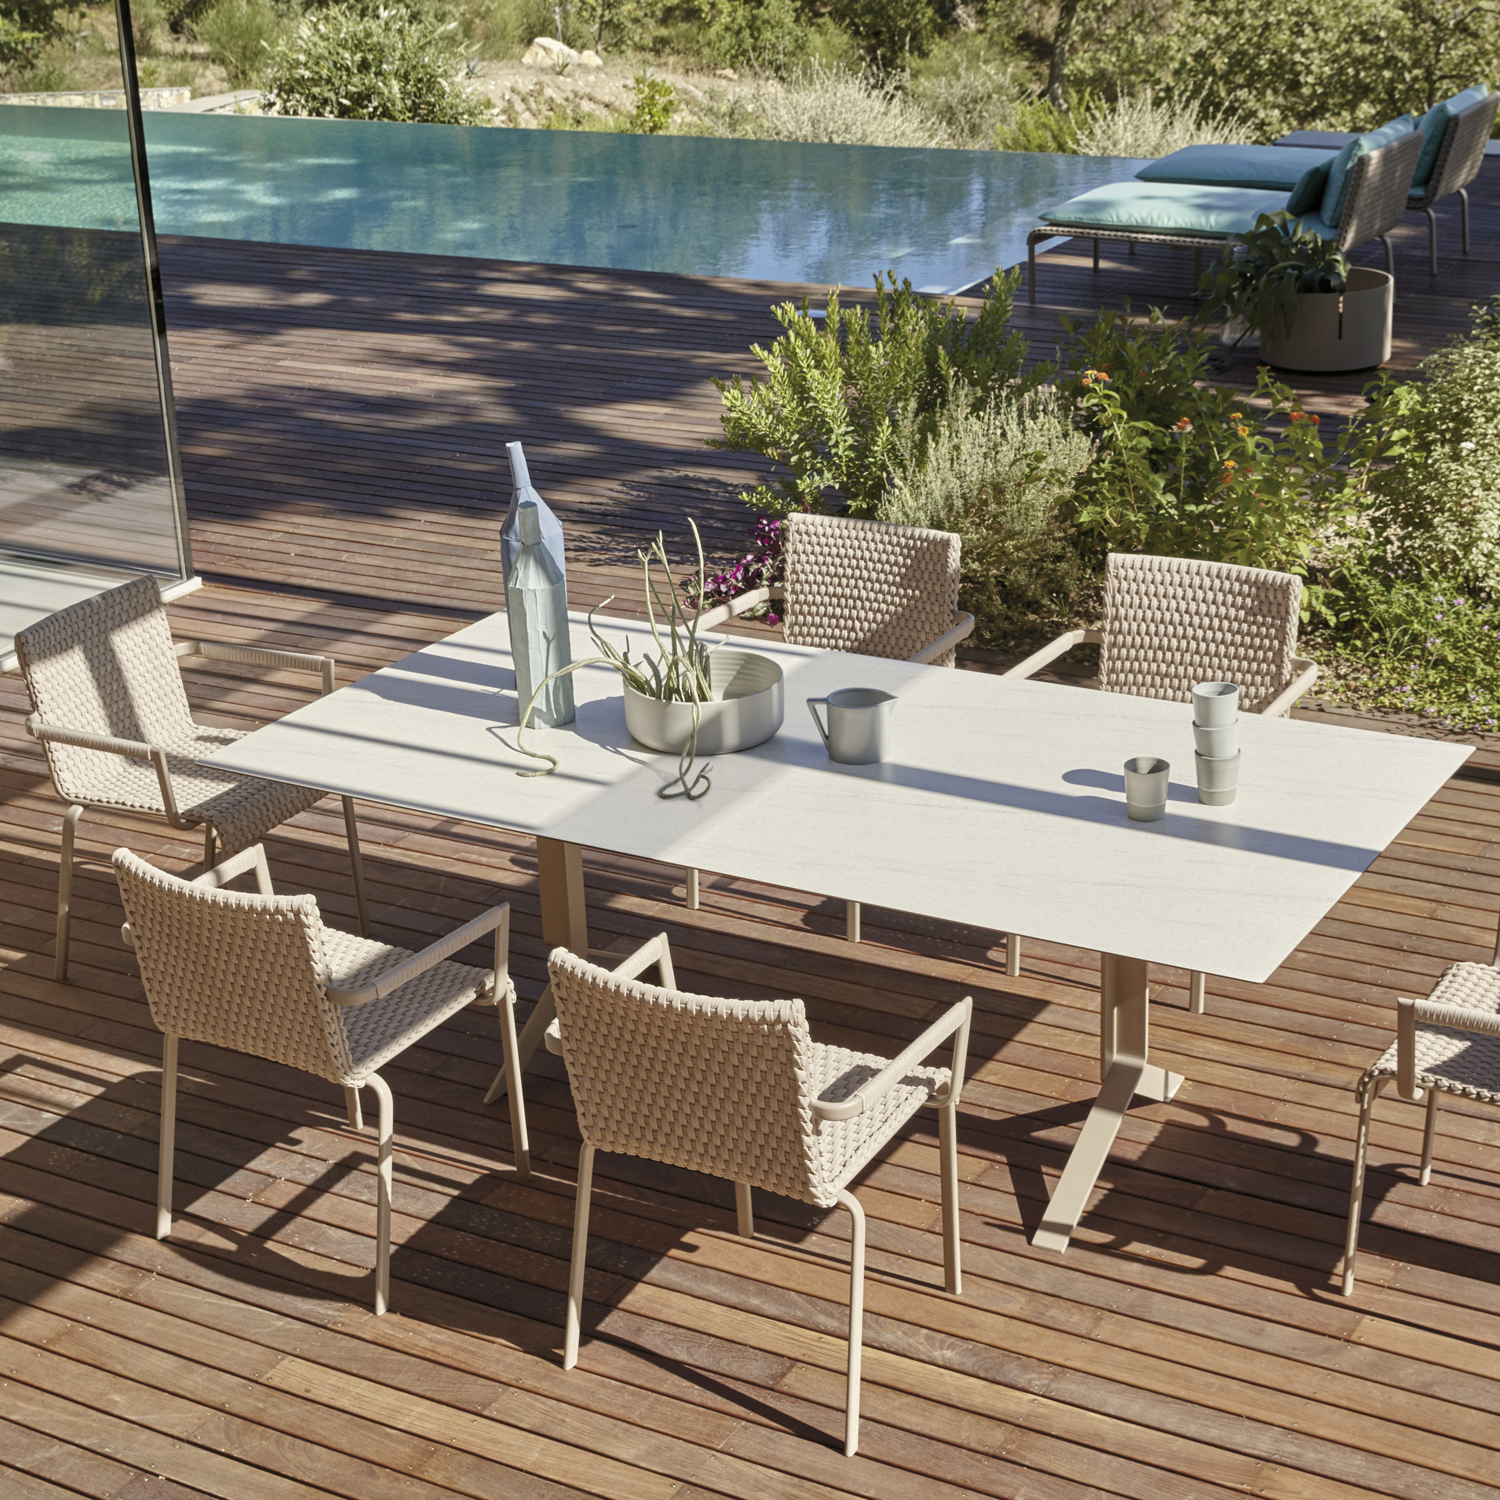 Key west high end italian table italian designer for Outdoor furniture high end